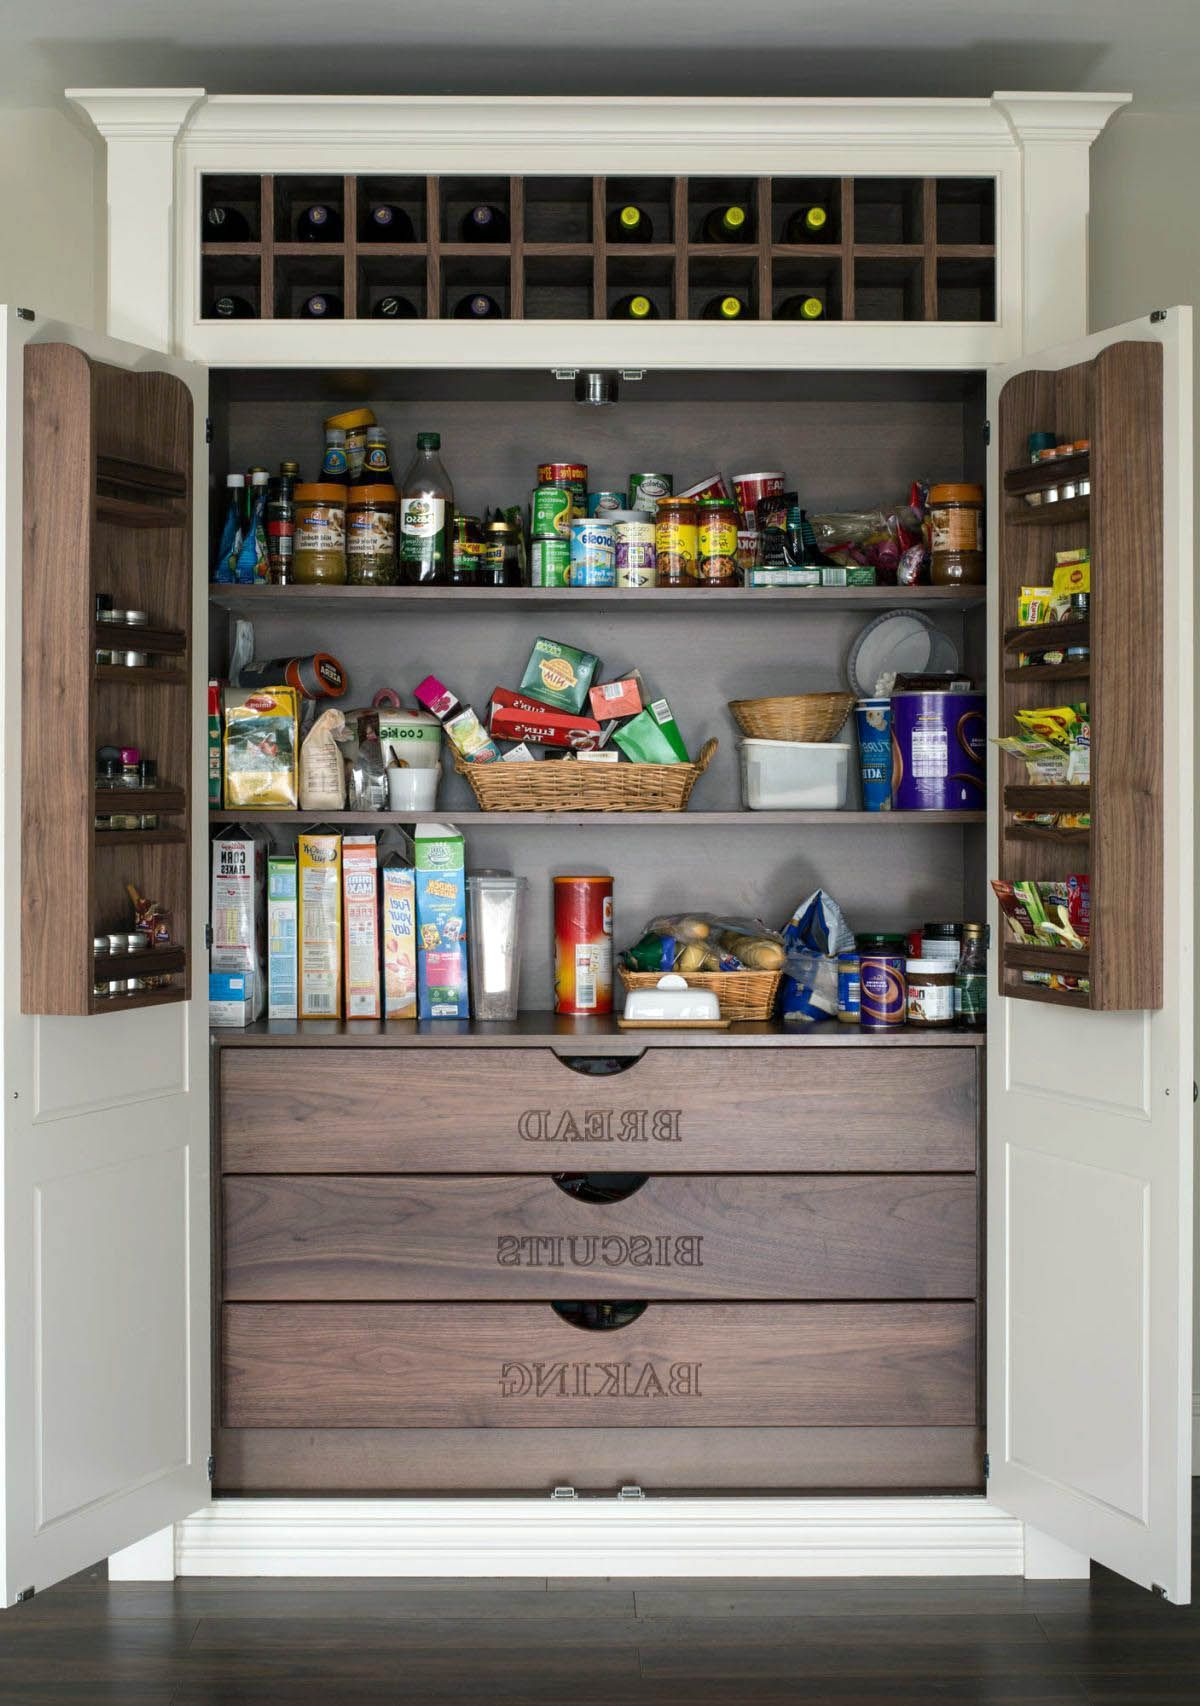 Real Home Inspiration Kitchen Pantry Cabinet 12 Inches Deep That Look Beautiful Kitchen Pantry Design Built In Pantry Pantry Design